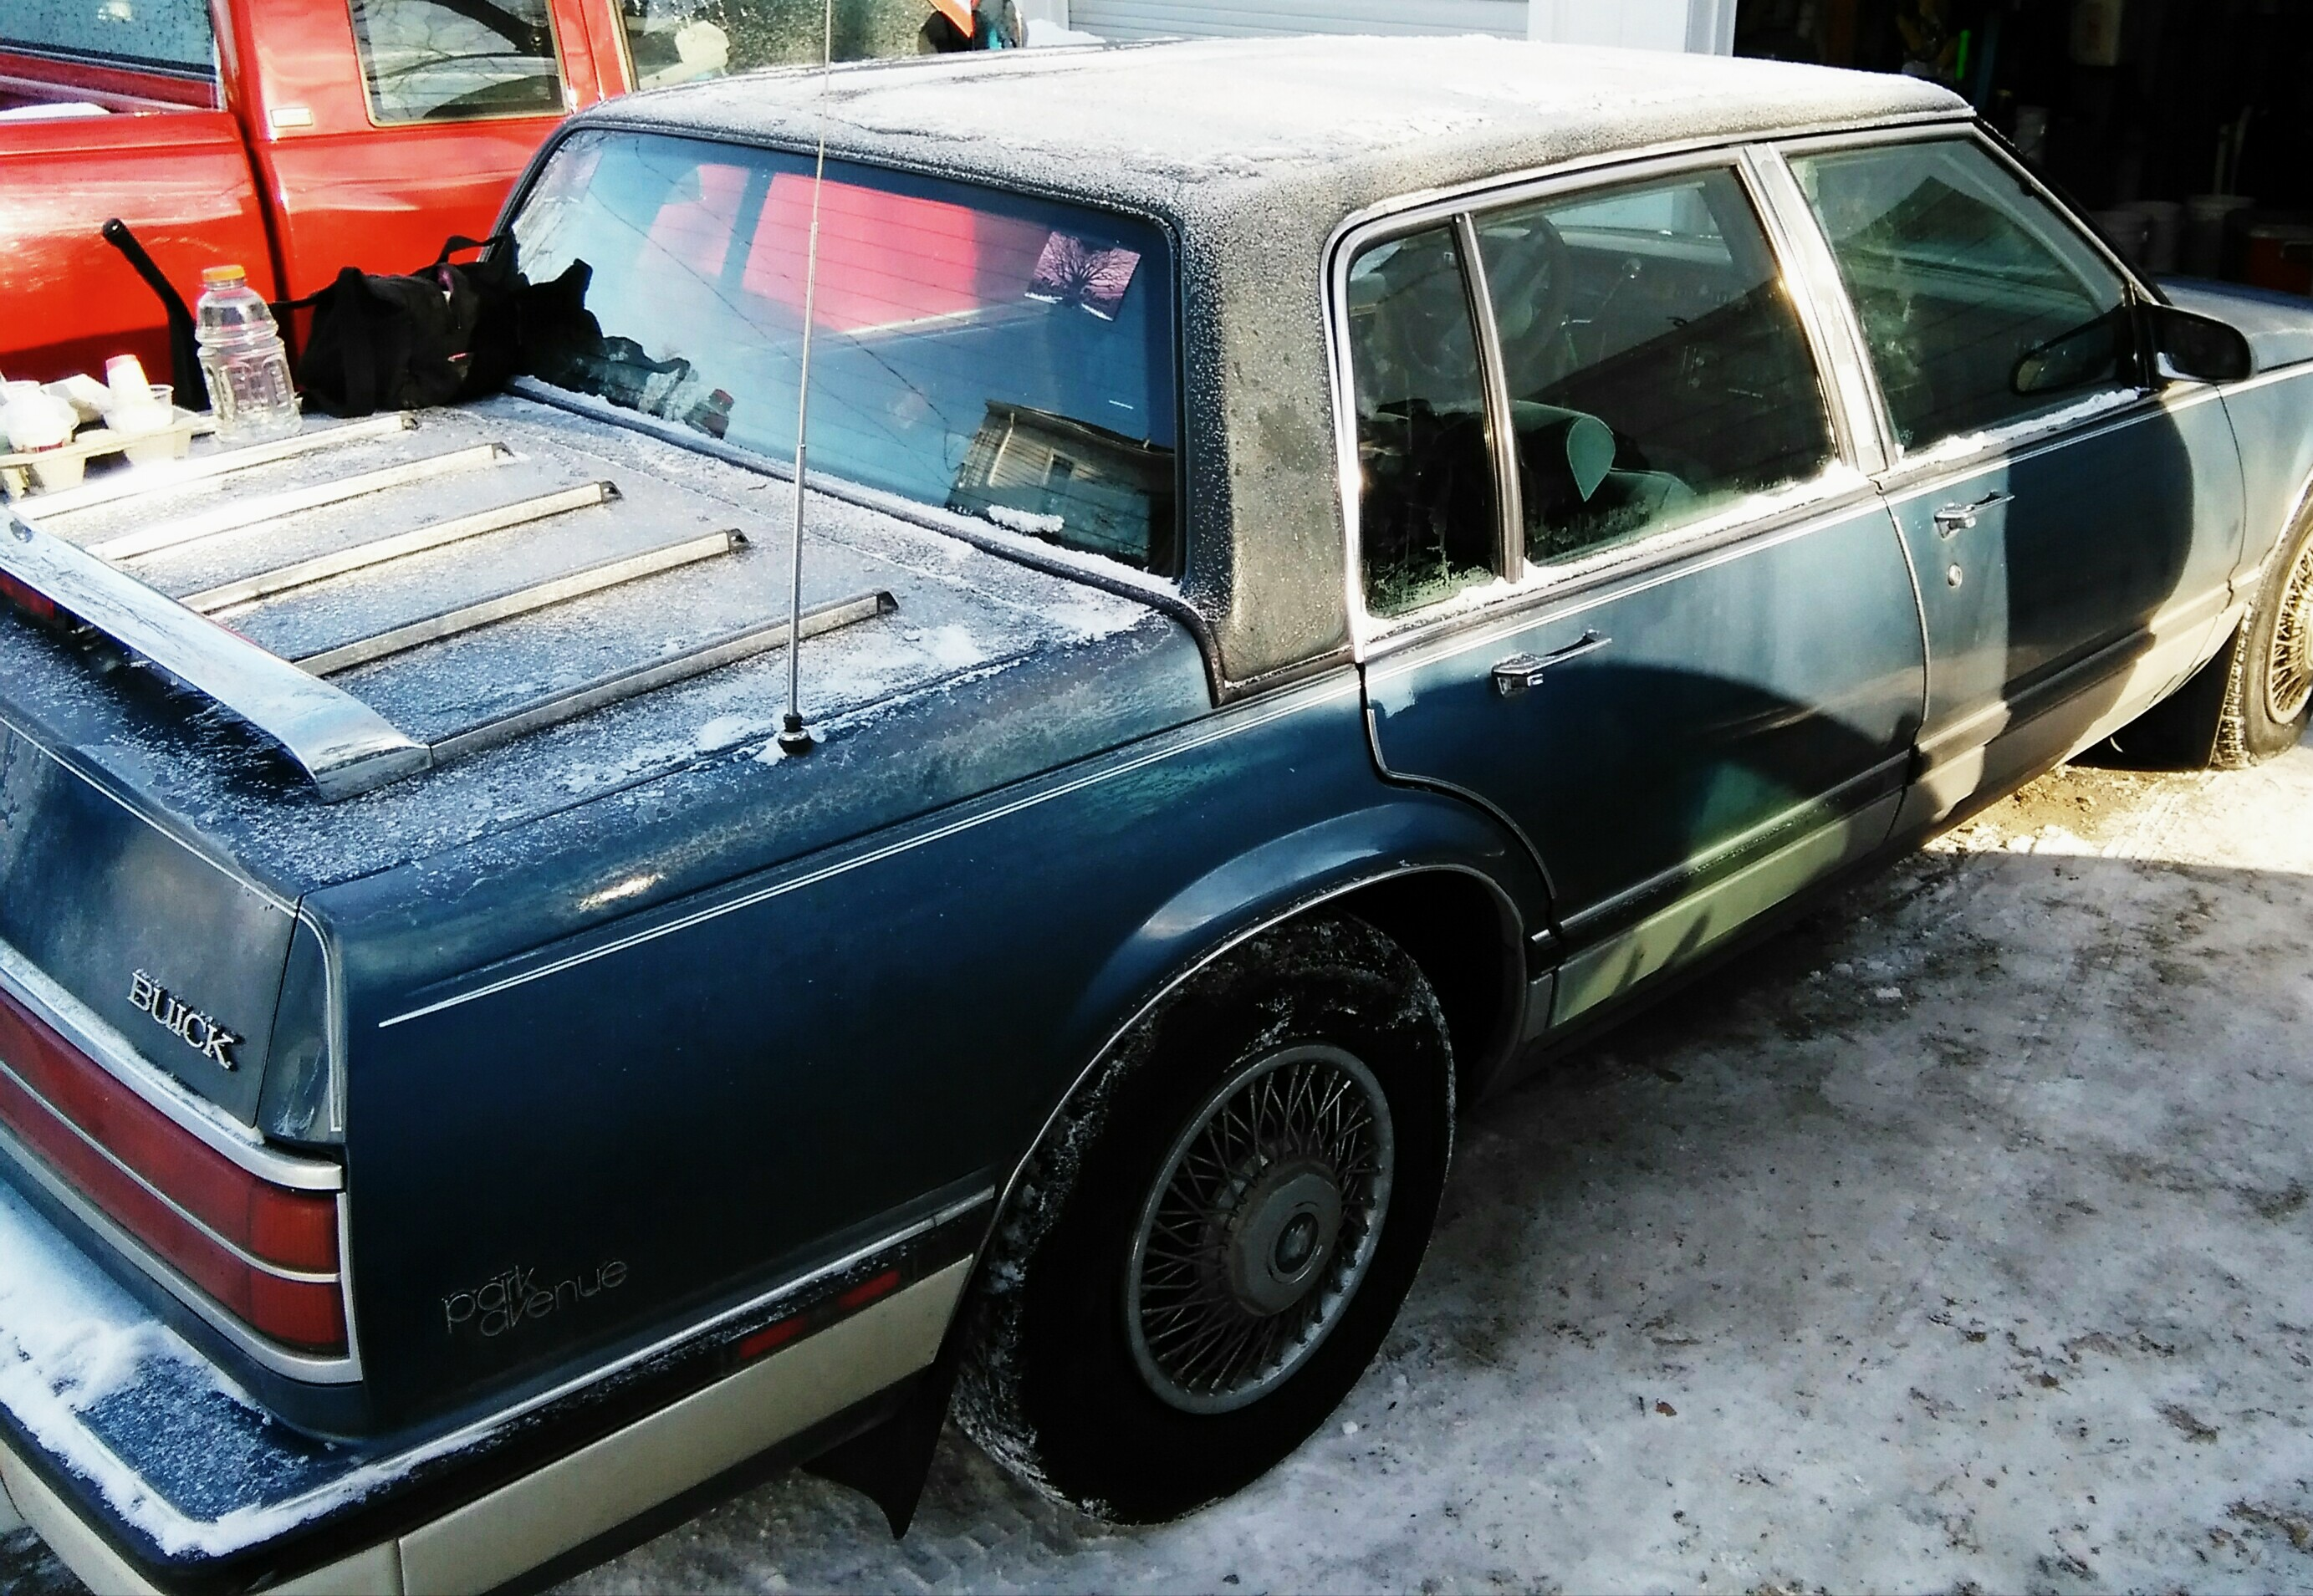 Cash for Cars Kissimmee, FL | Sell Your Junk Car | The Clunker Junker